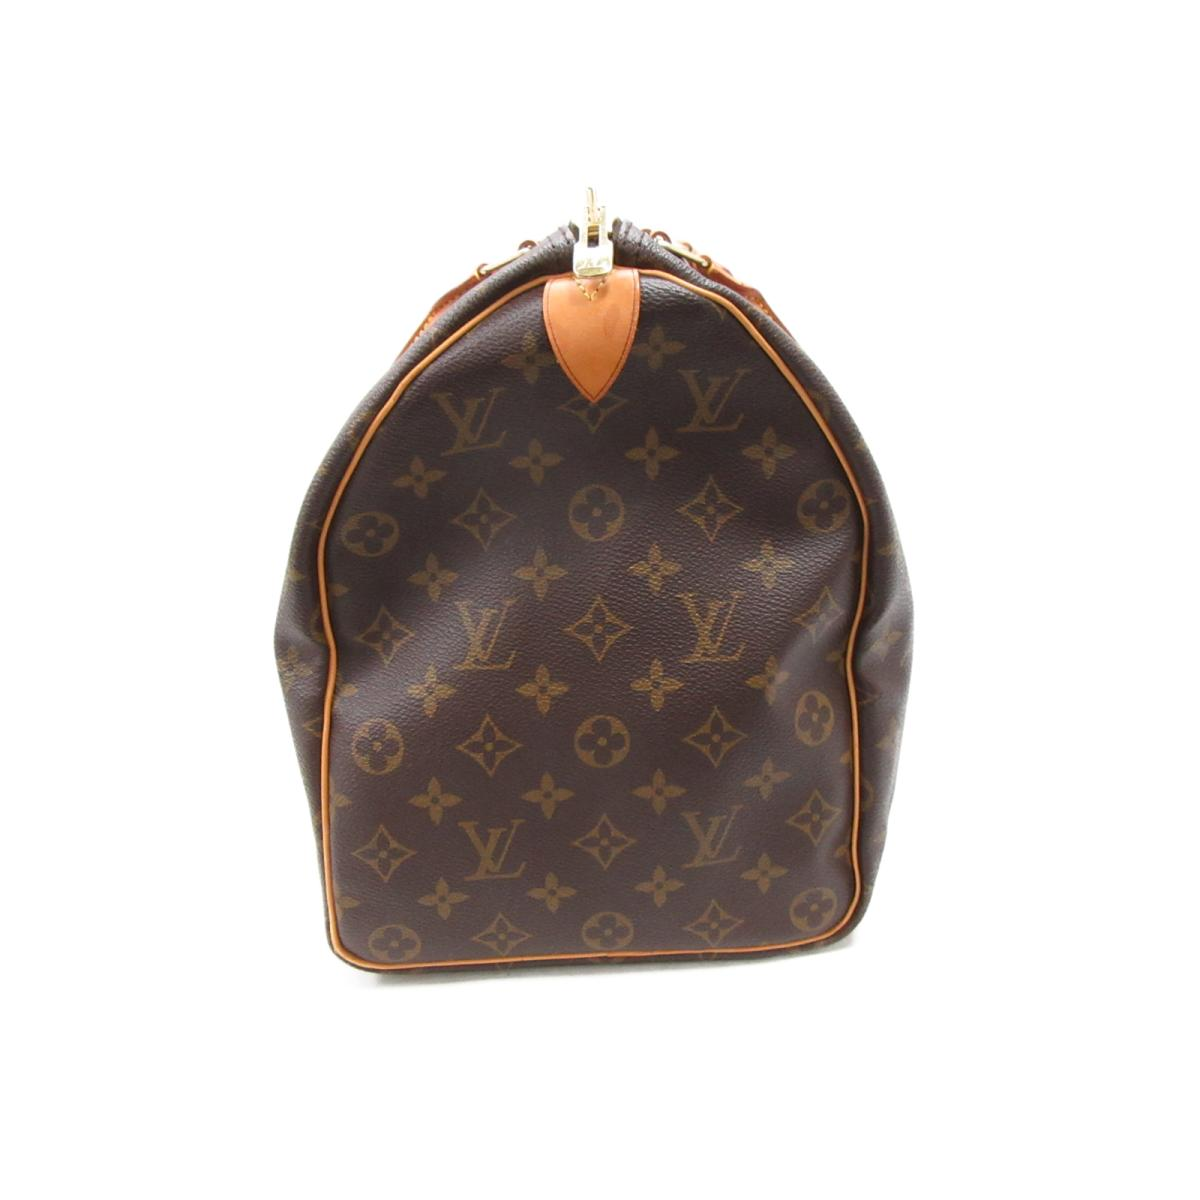 Authentic LOUIS VUITTON Keepall 45 Boston luggage Travel Bag M41428 Monogram b003fed874880